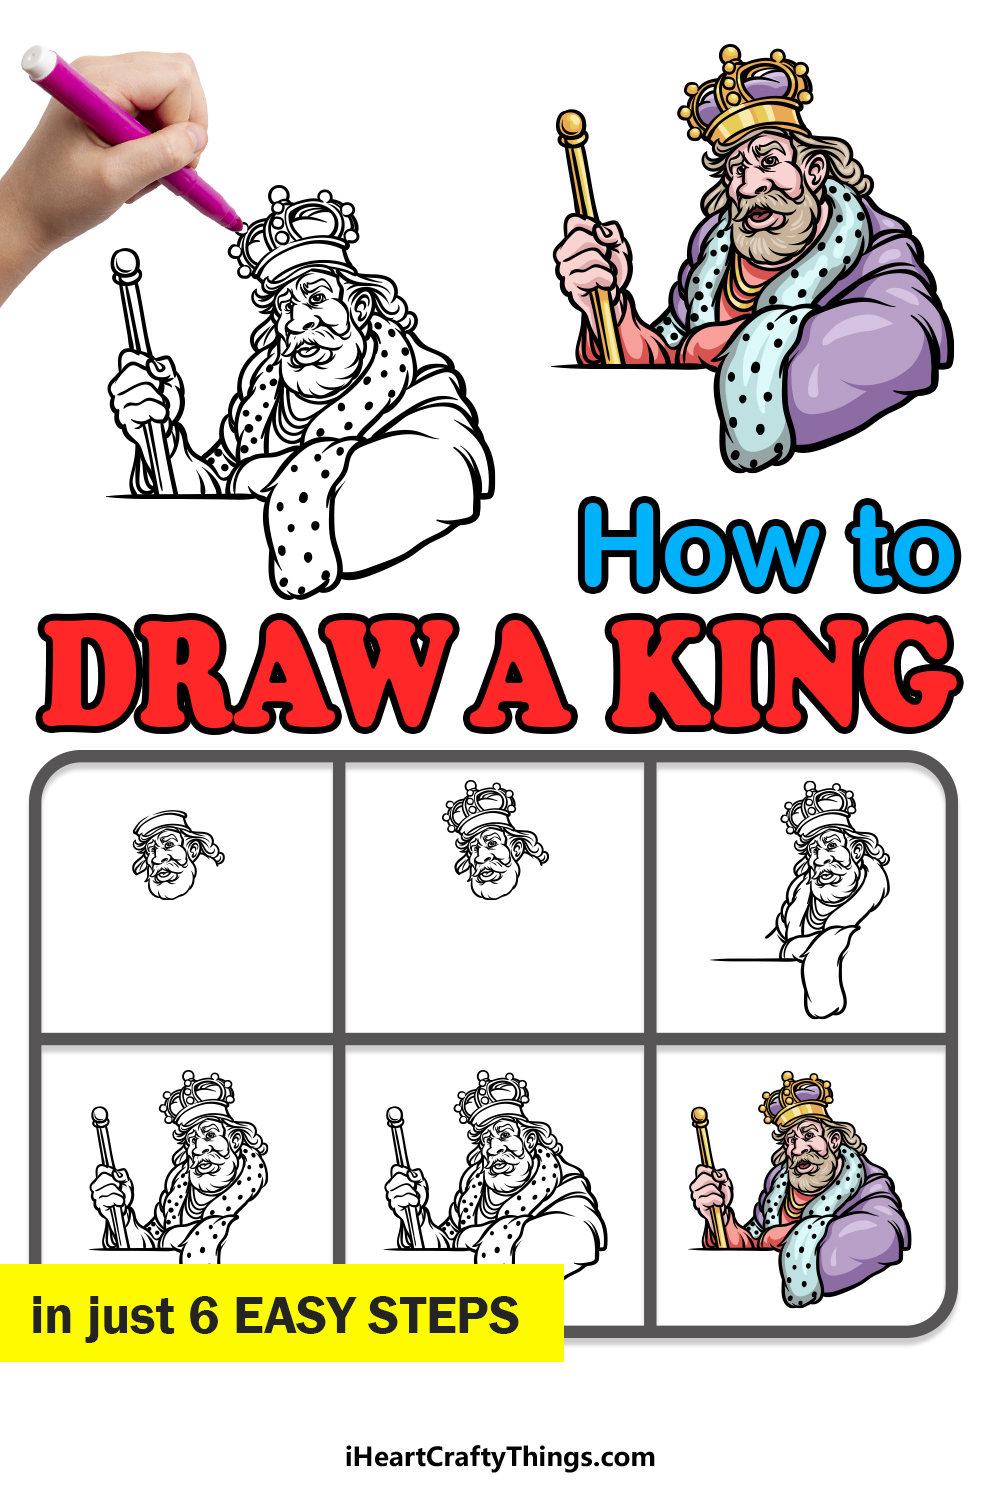 how to draw a King in 6 easy steps